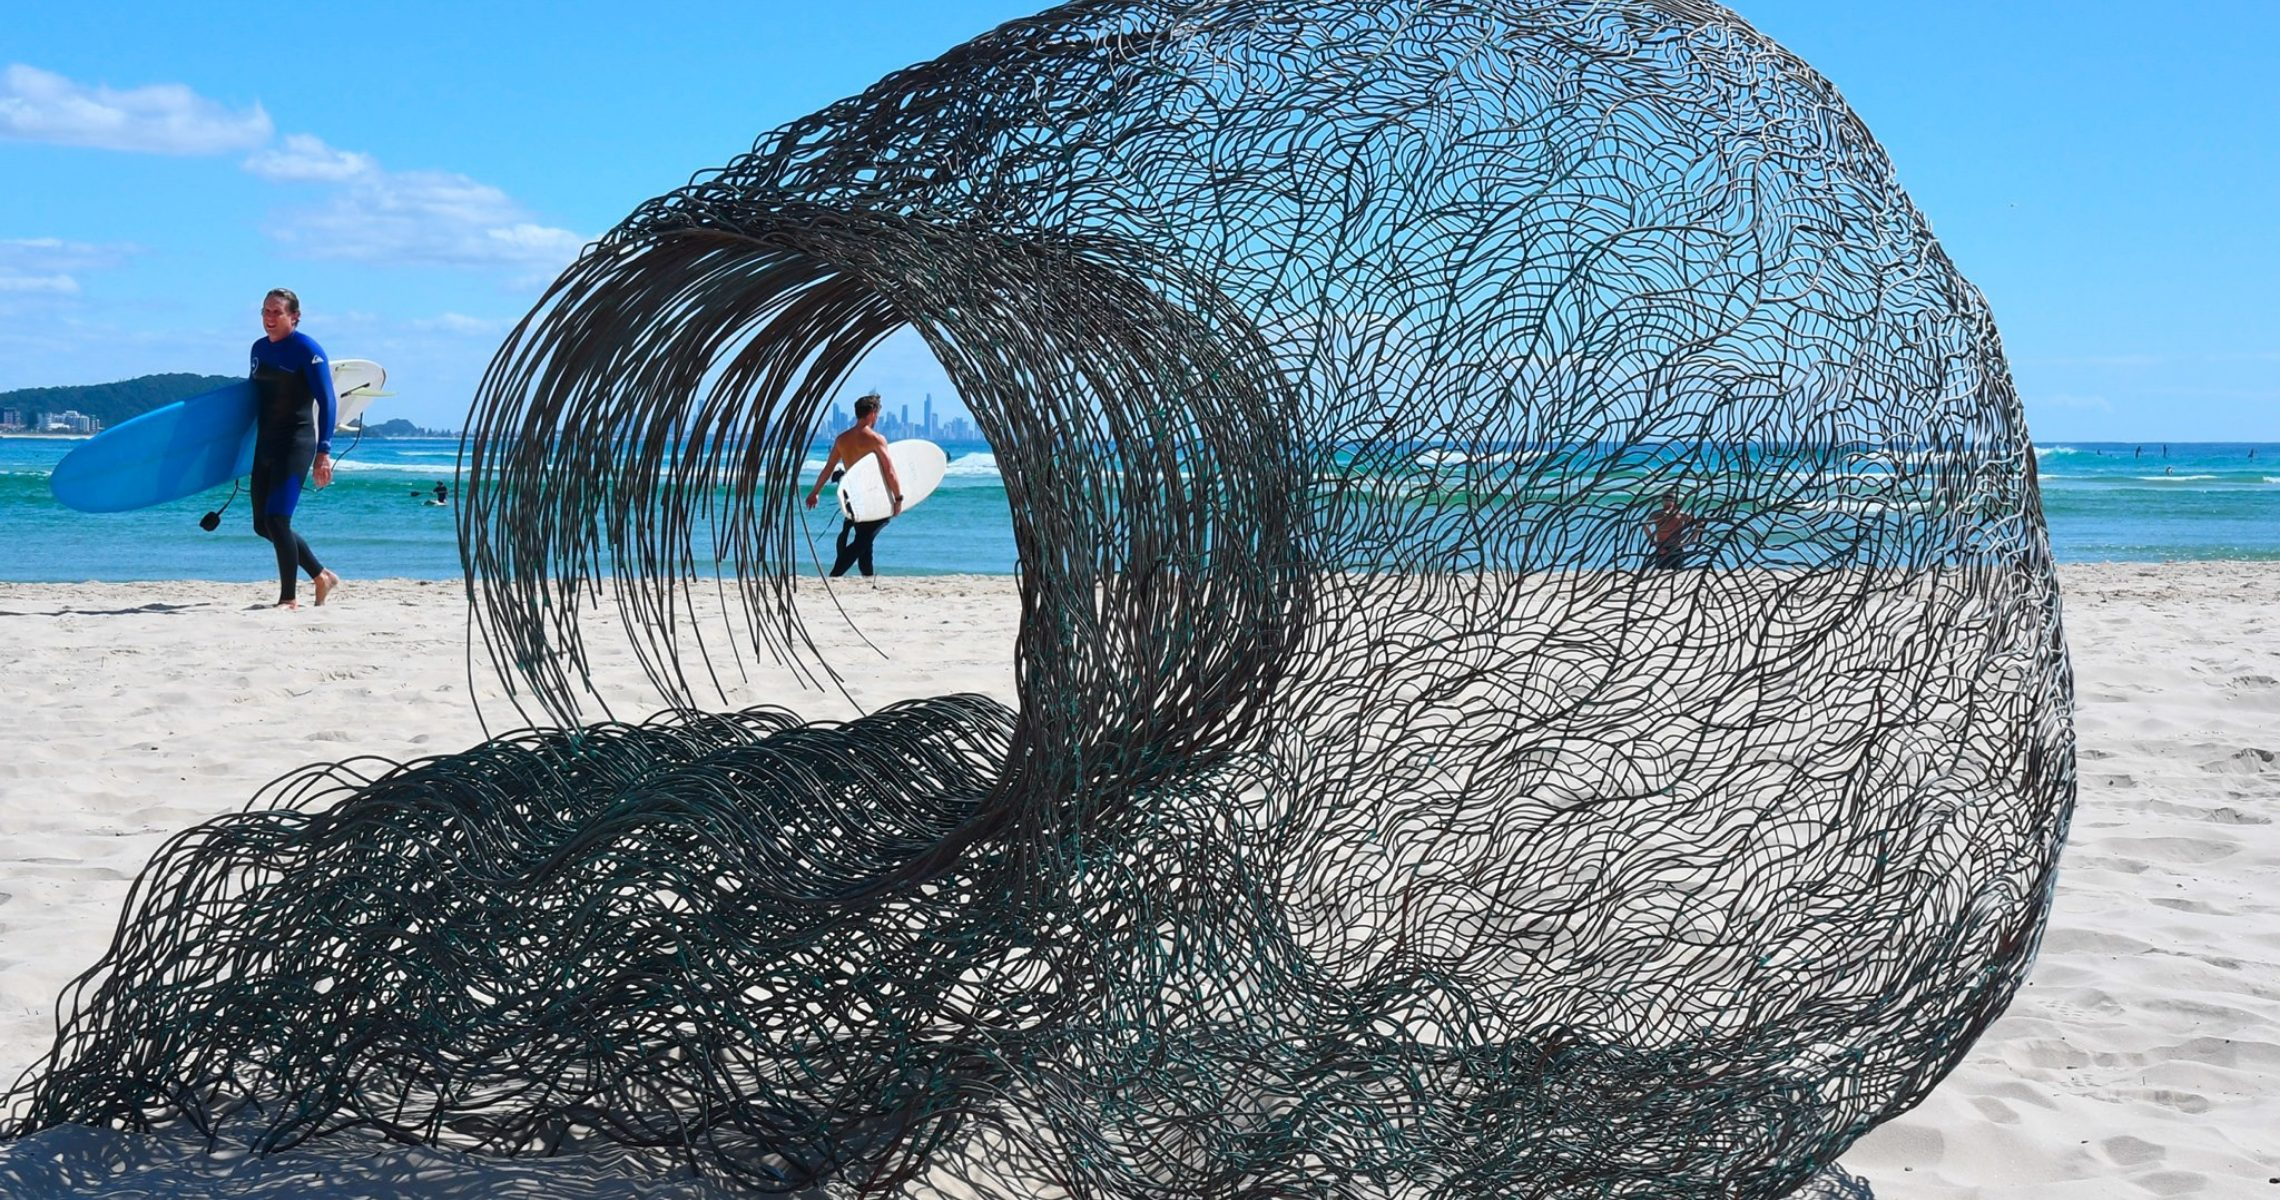 Artists prepare their sculptures for installation at SWELL Sculpture Festival.